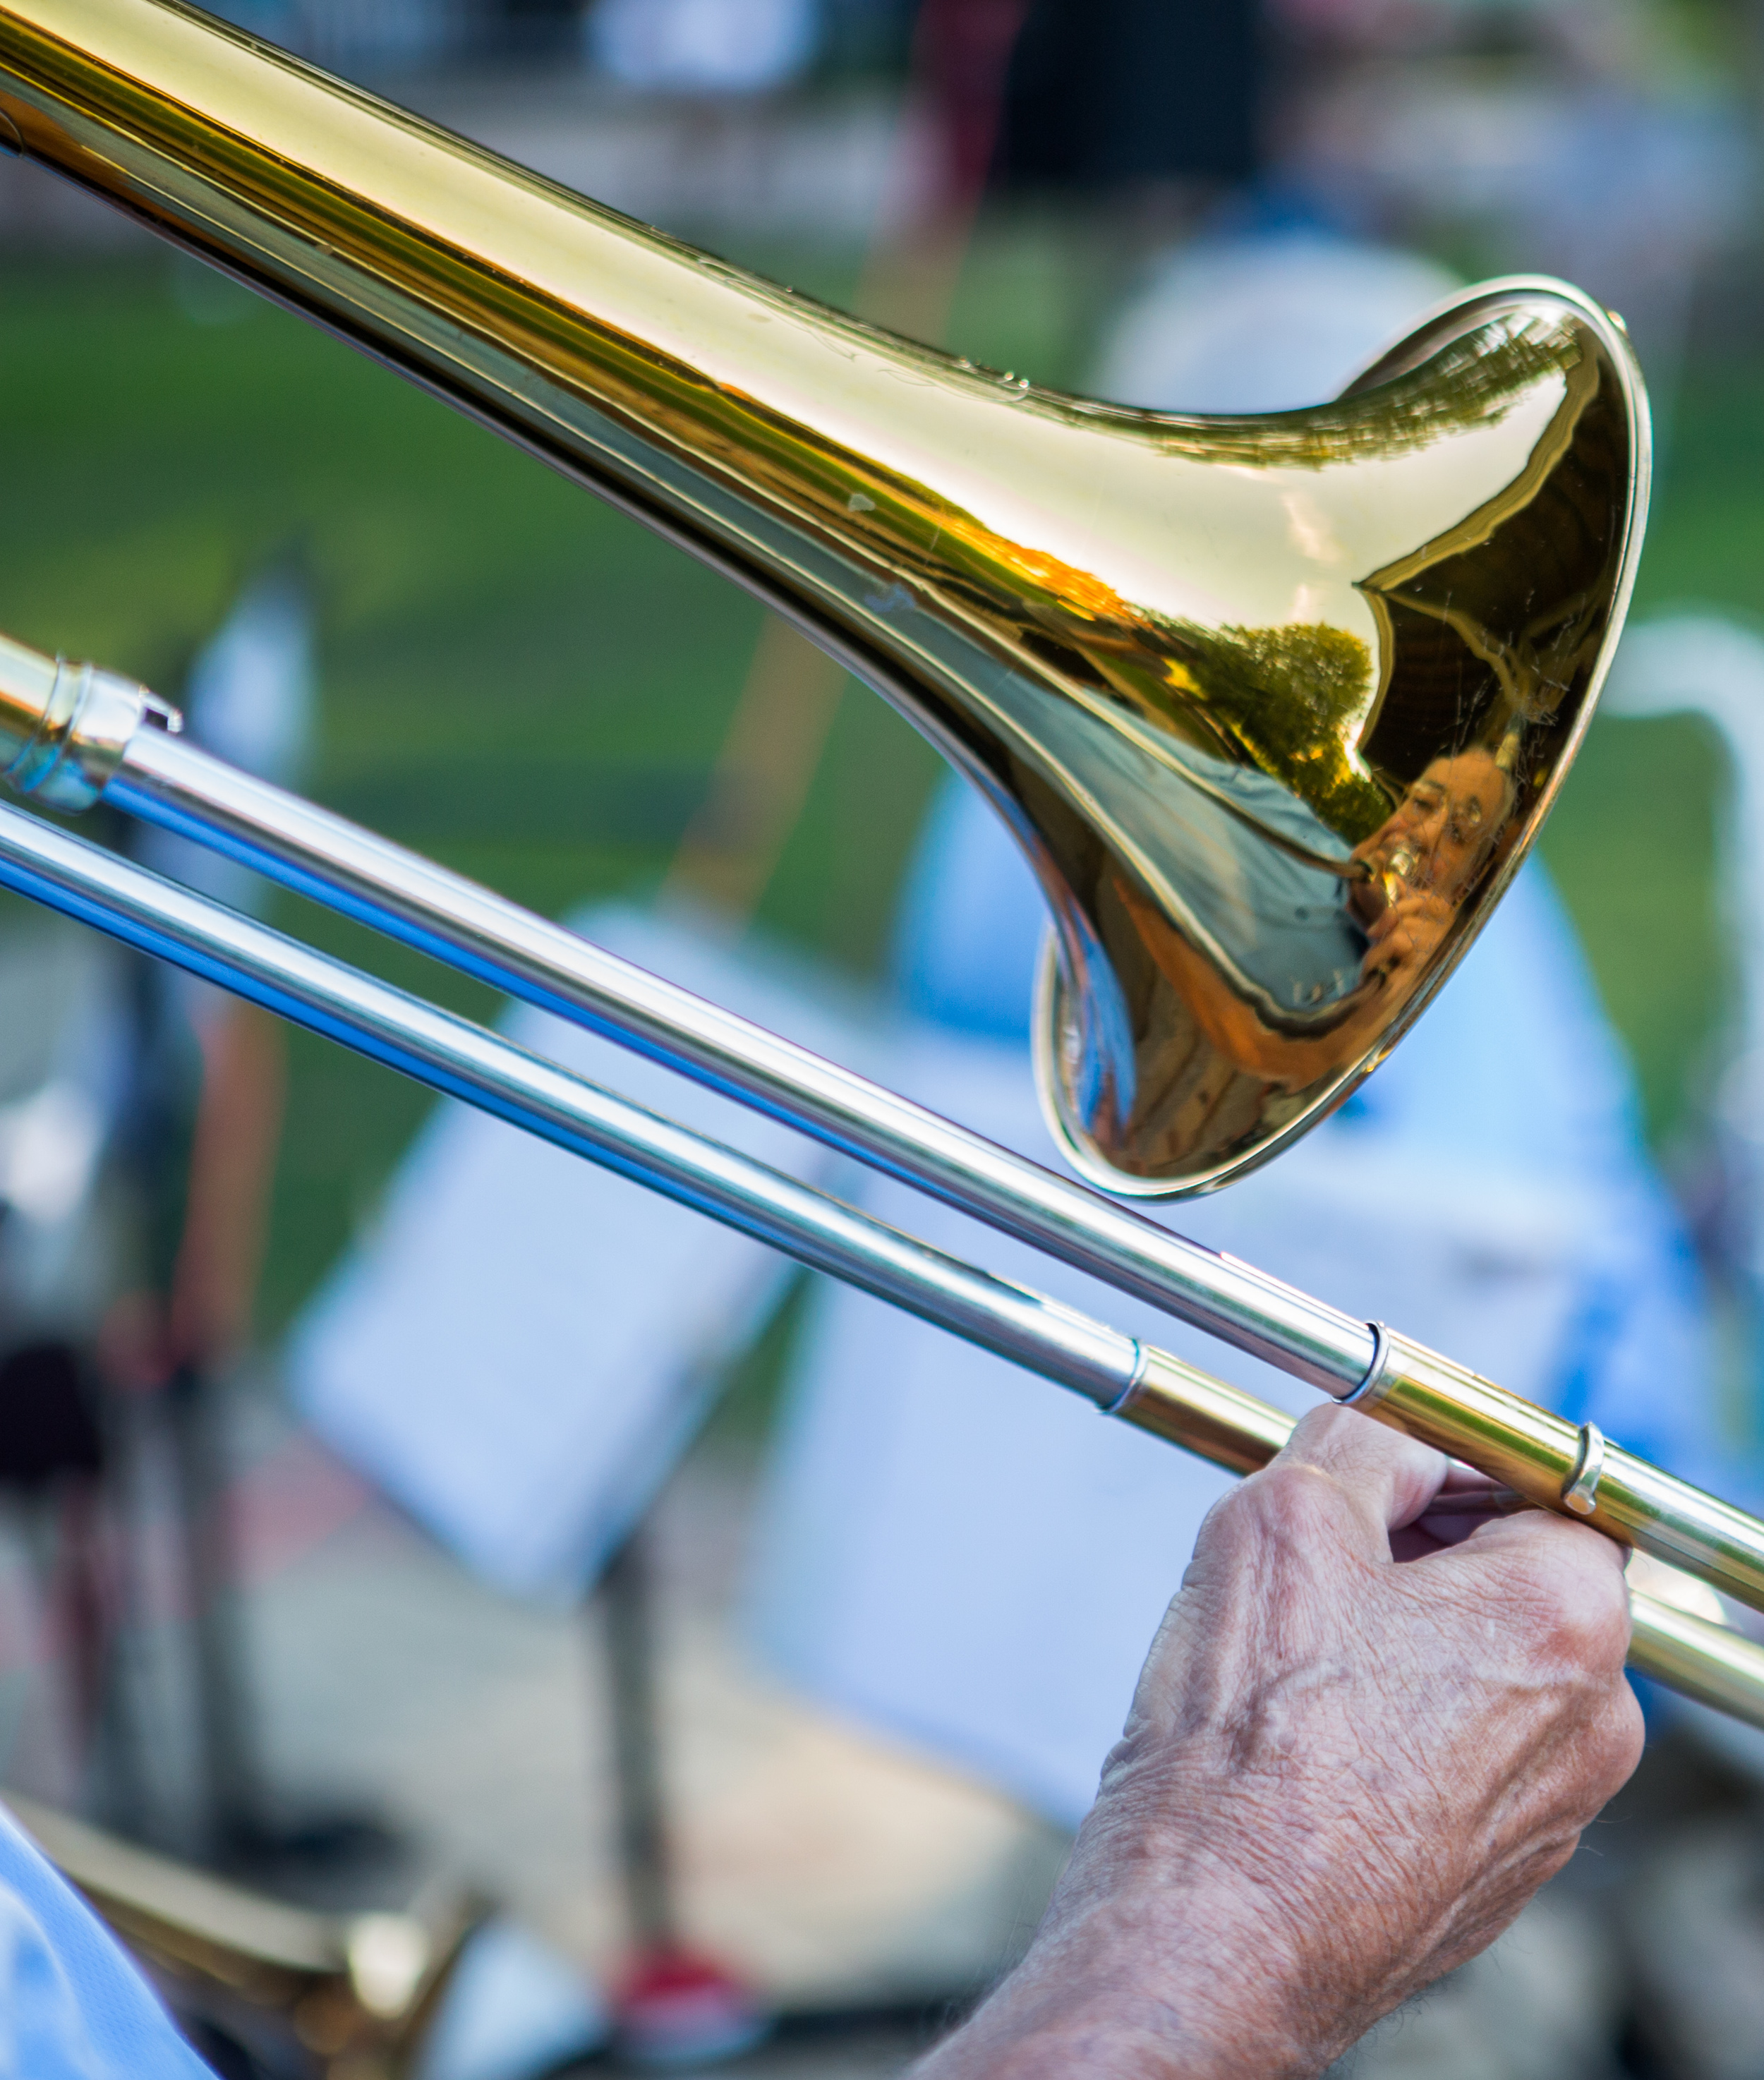 Lou Bernier plays the trombone with The Second Winds as part of the weekly concert series at Talleyrand Park in Bellefonte on Sunday, Aug. 7, 2016.